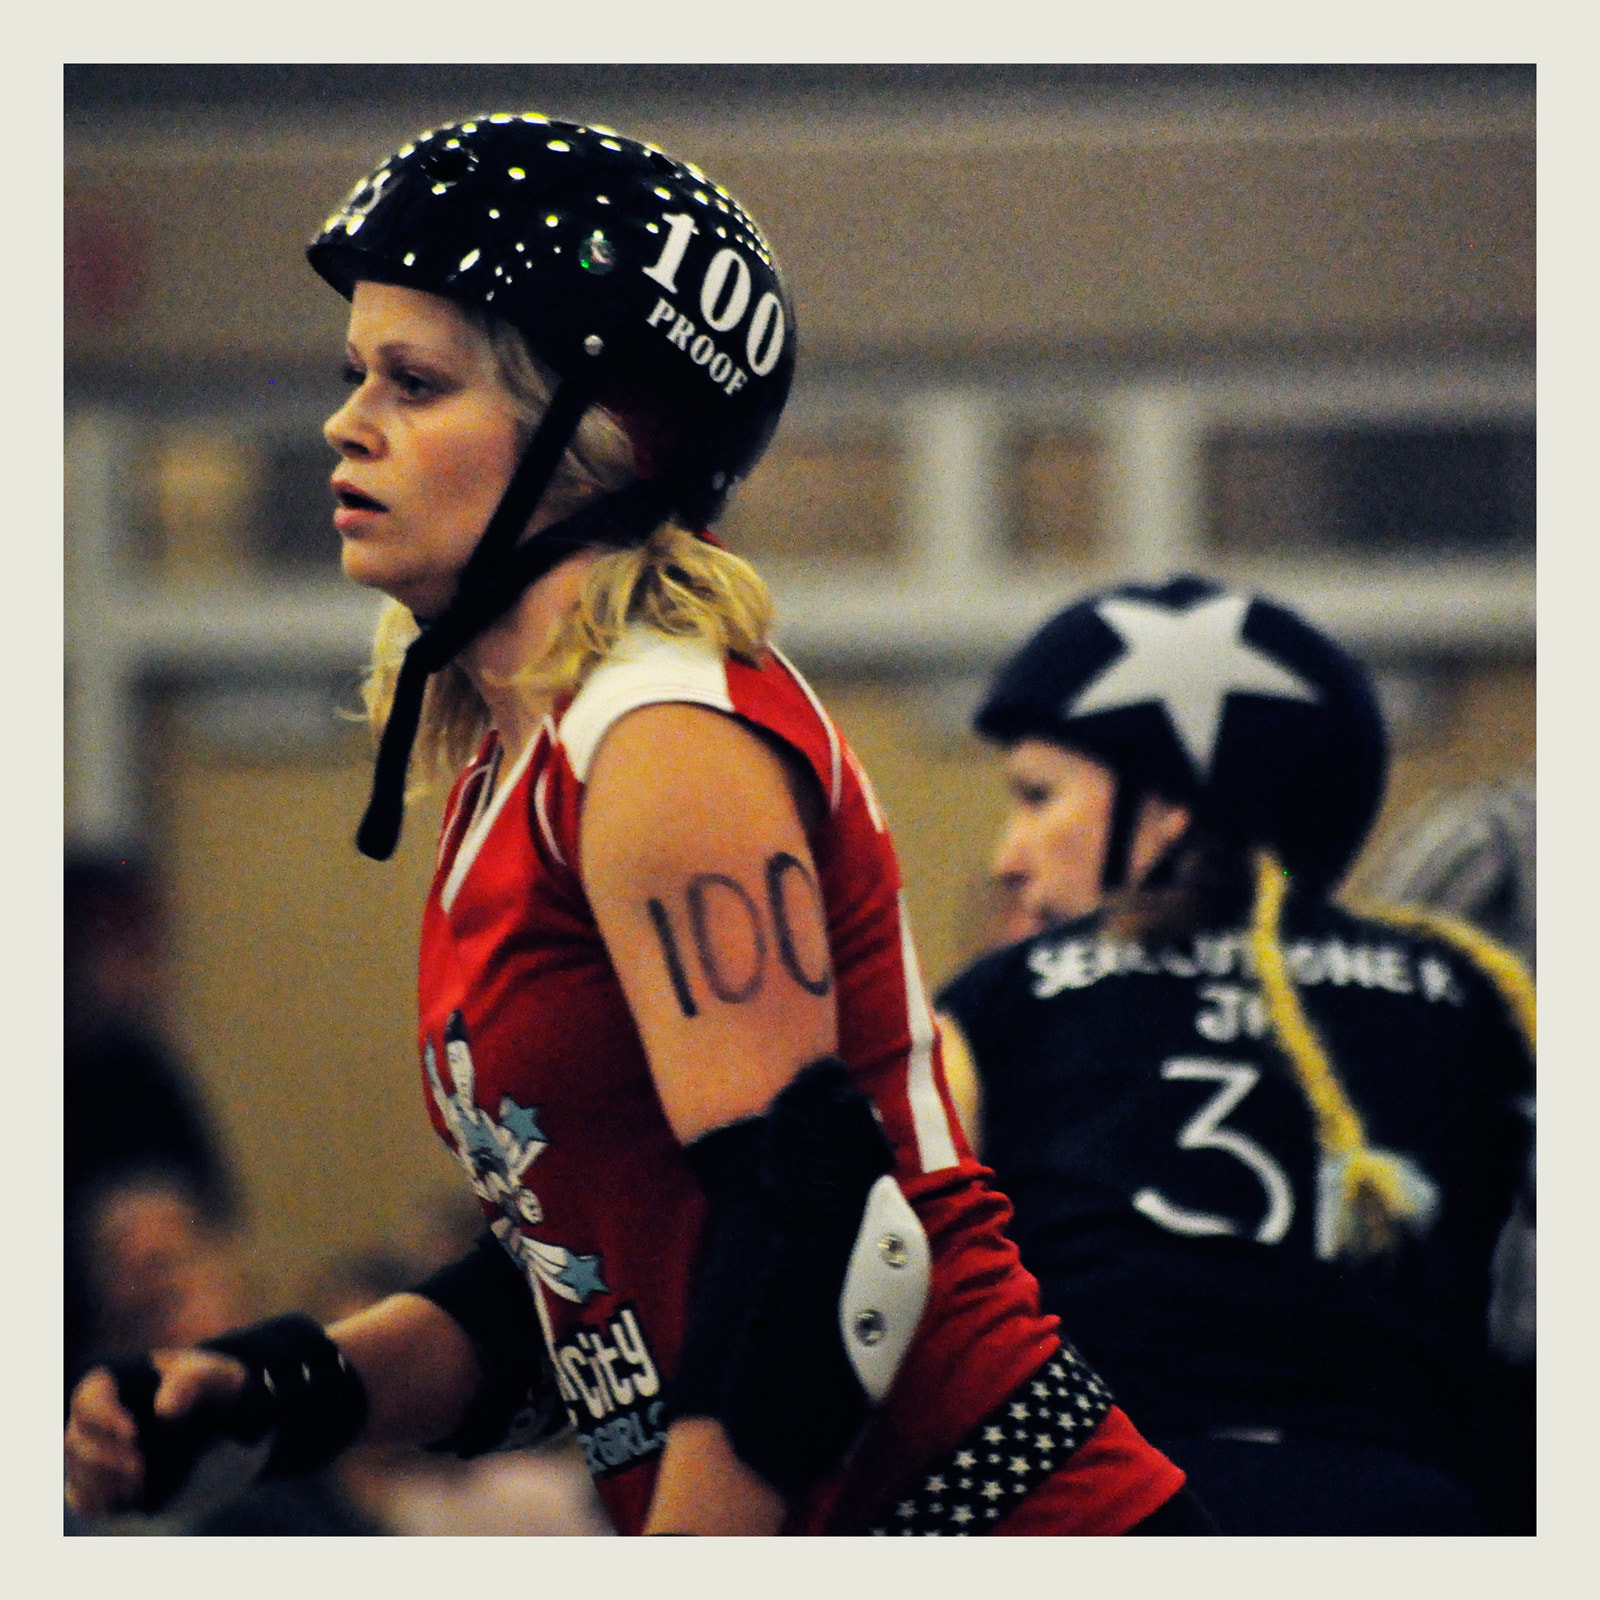 Photograph Roller Girl by Jeremy Ramos on 500px